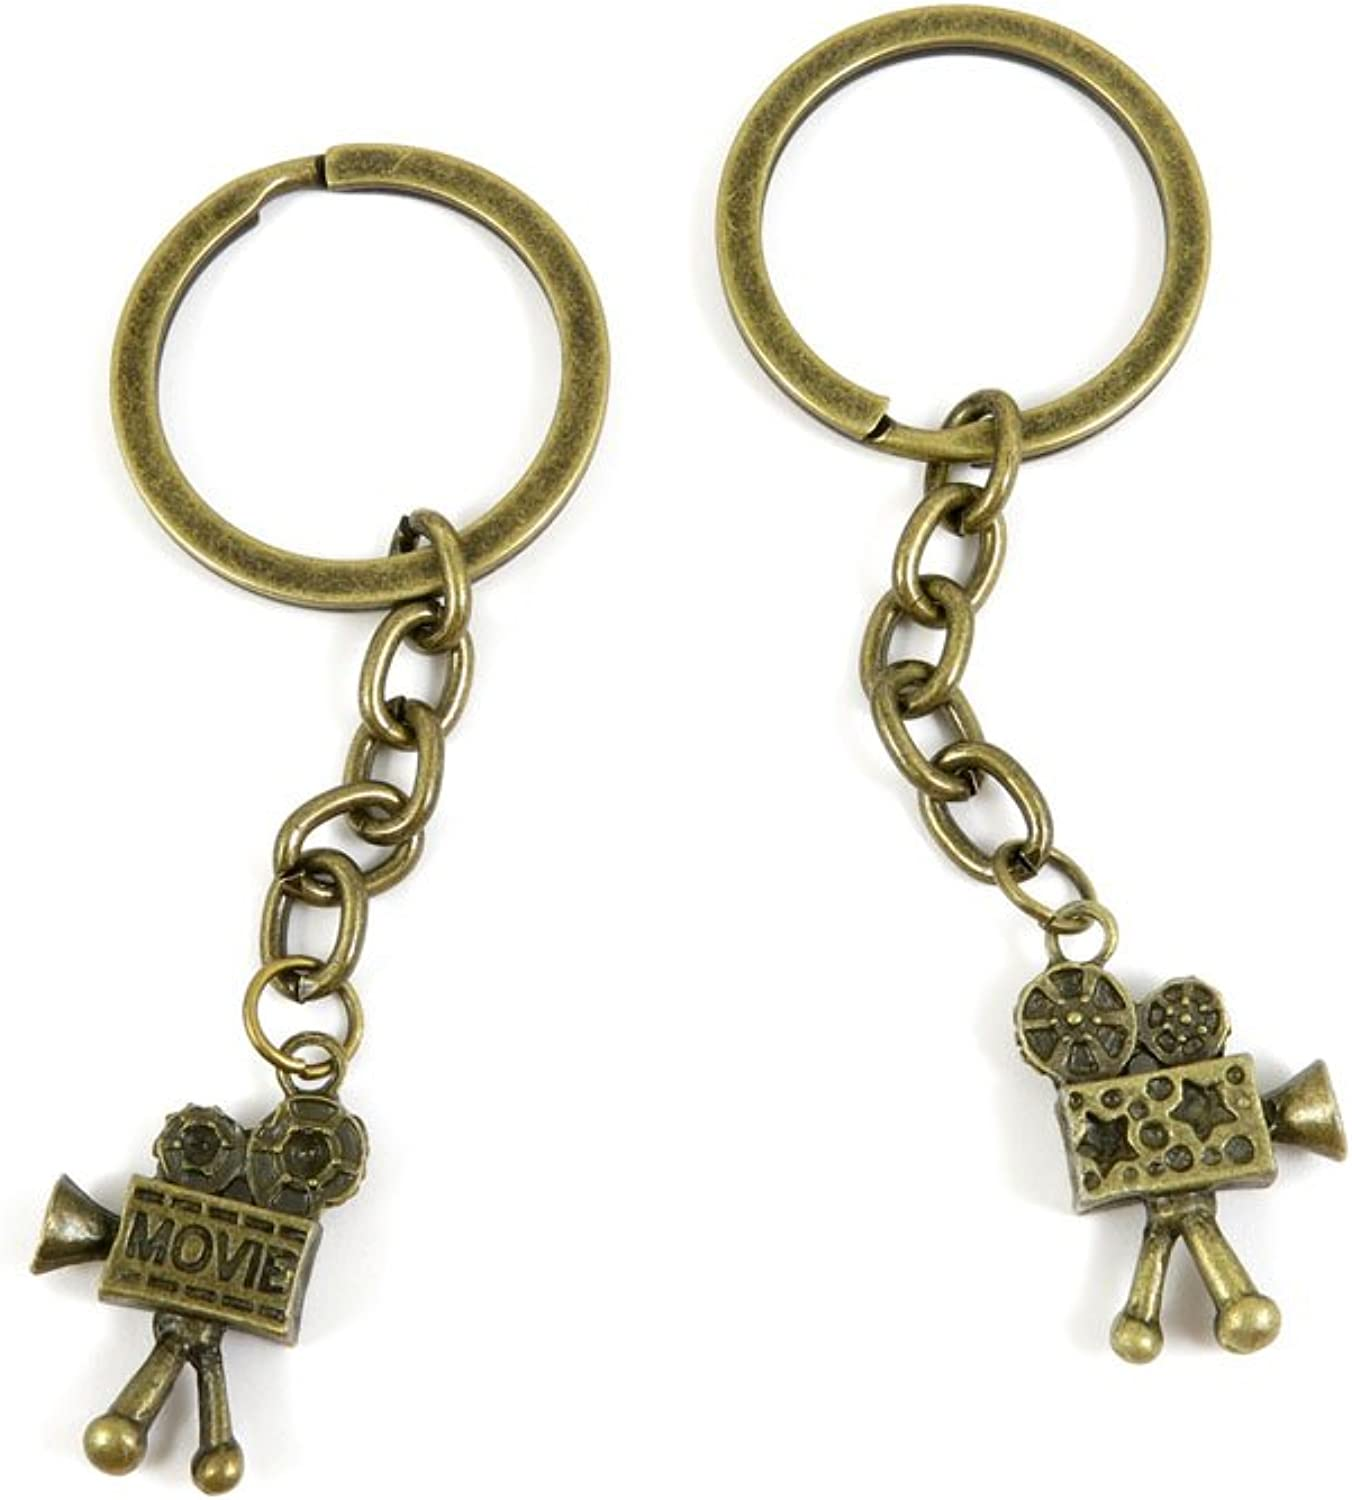 100 PCS Keyrings Keychains Key Ring Chains Tags Jewelry Findings Clasps Buckles Supplies E1DK3 Projector Bioscope